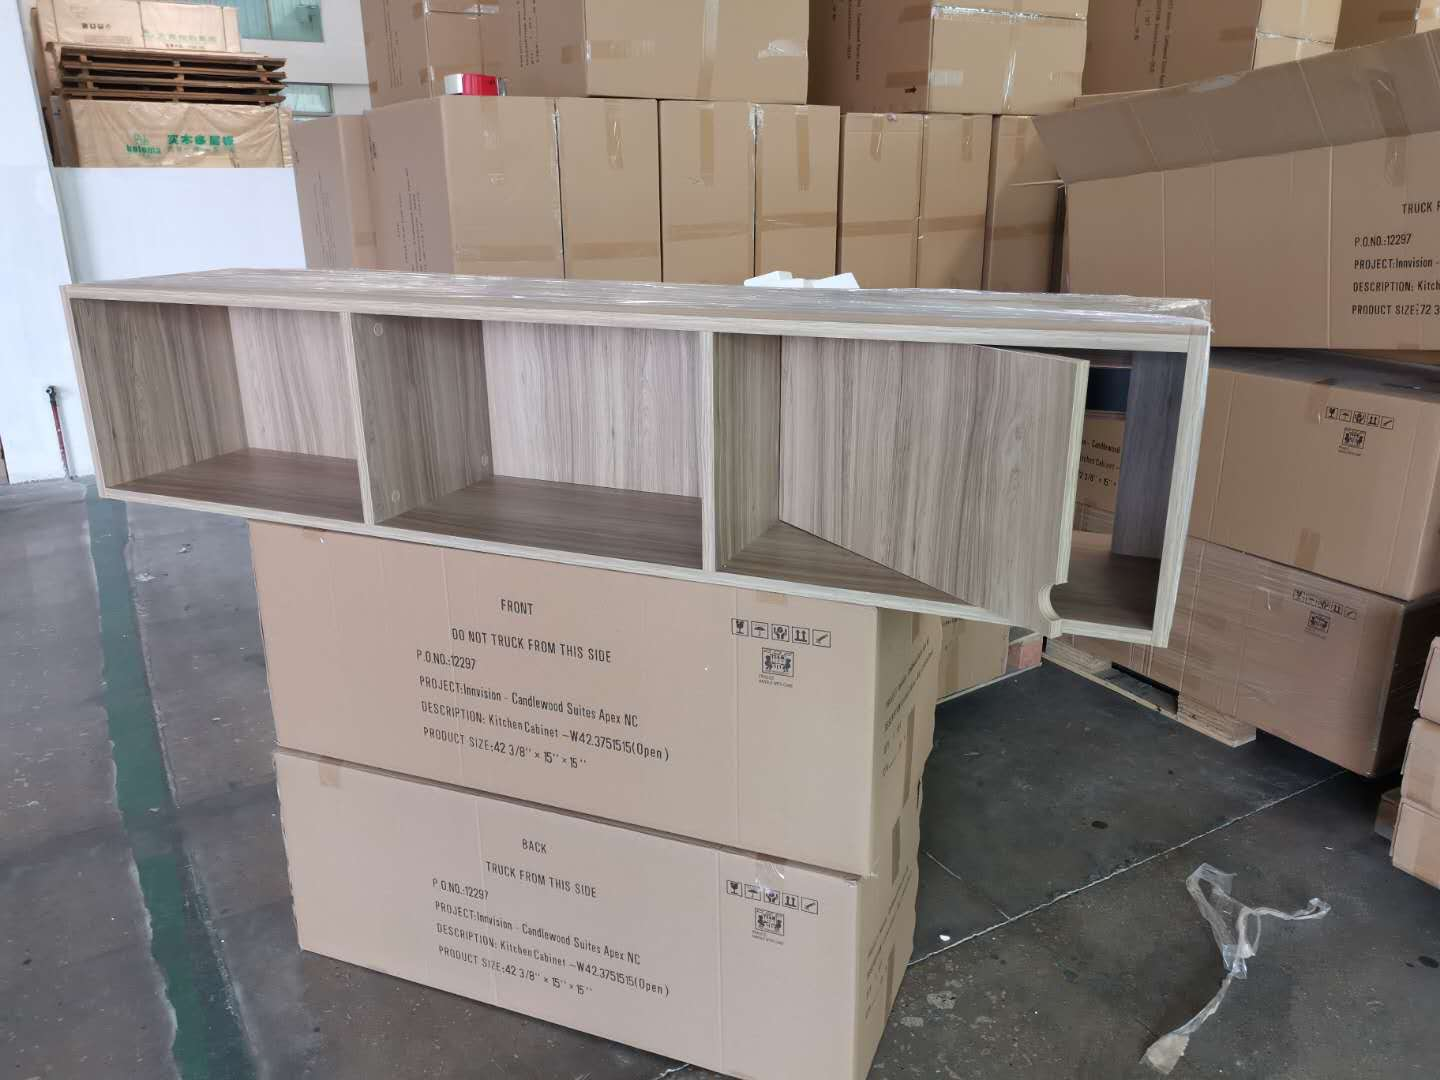 Formica plastic laminated open cabinets